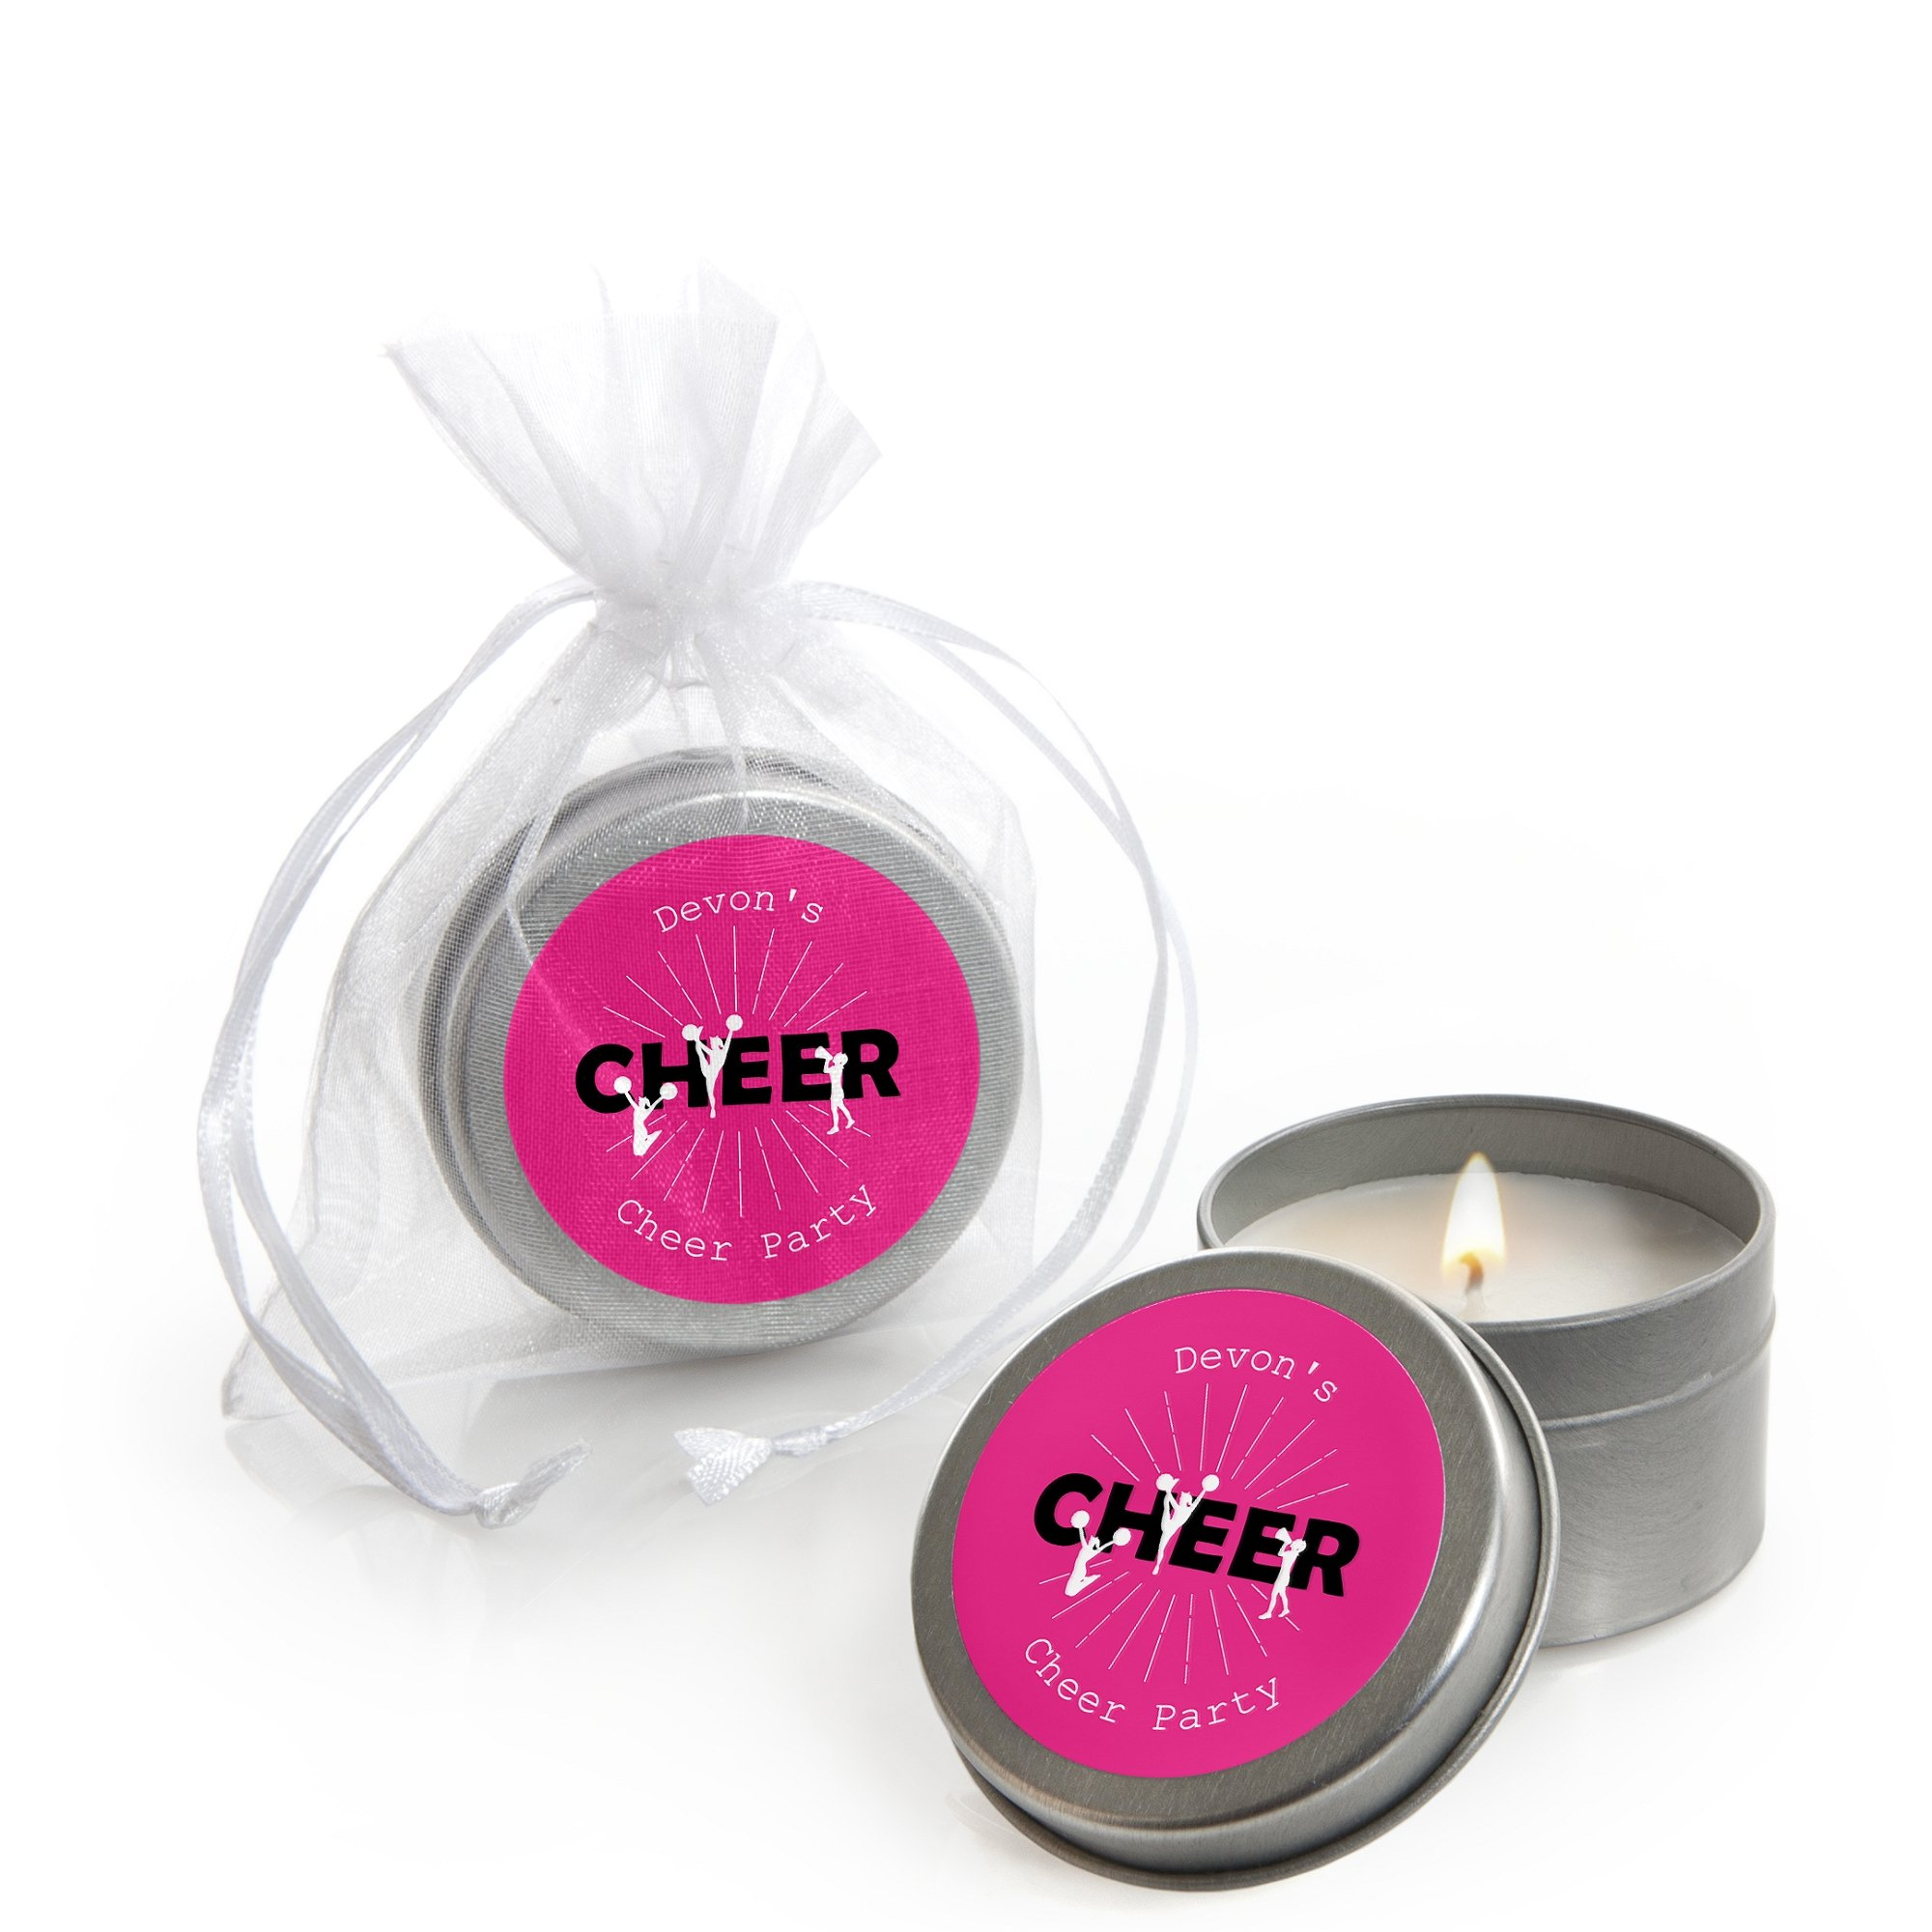 Personalized We've Got Spirit - Cheerleading - Custom Candle Tin Birthday Party or Cheer Party Favors - Custom Text - Set of 12